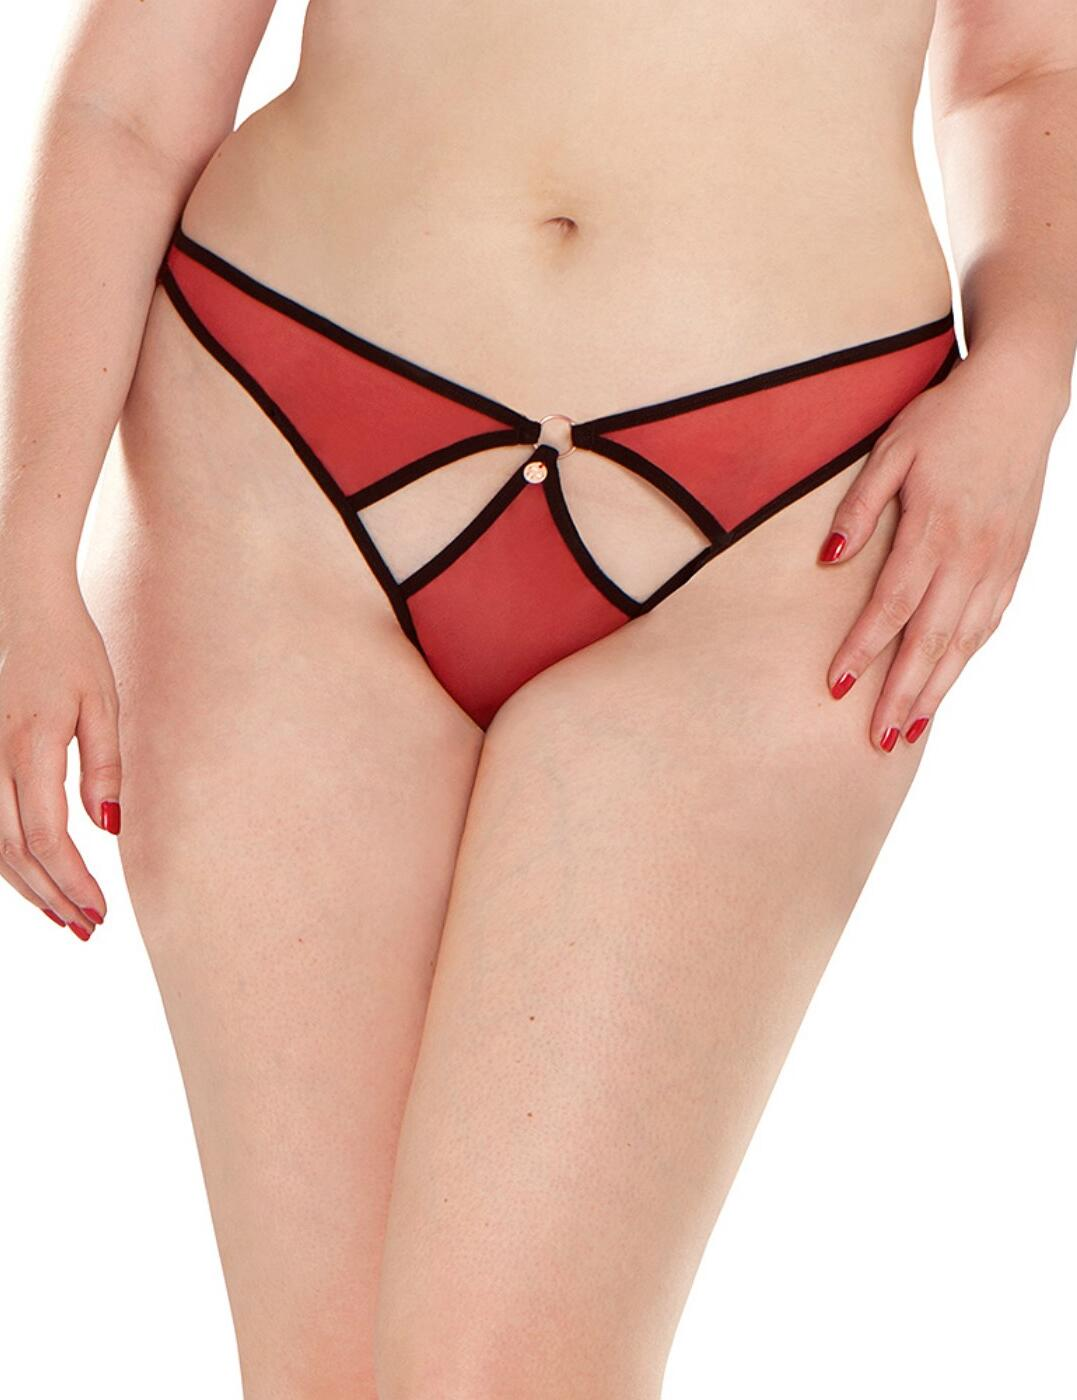 ST3302 Scantilly by Curvy Kate Knock Out Thong - ST3302 Red